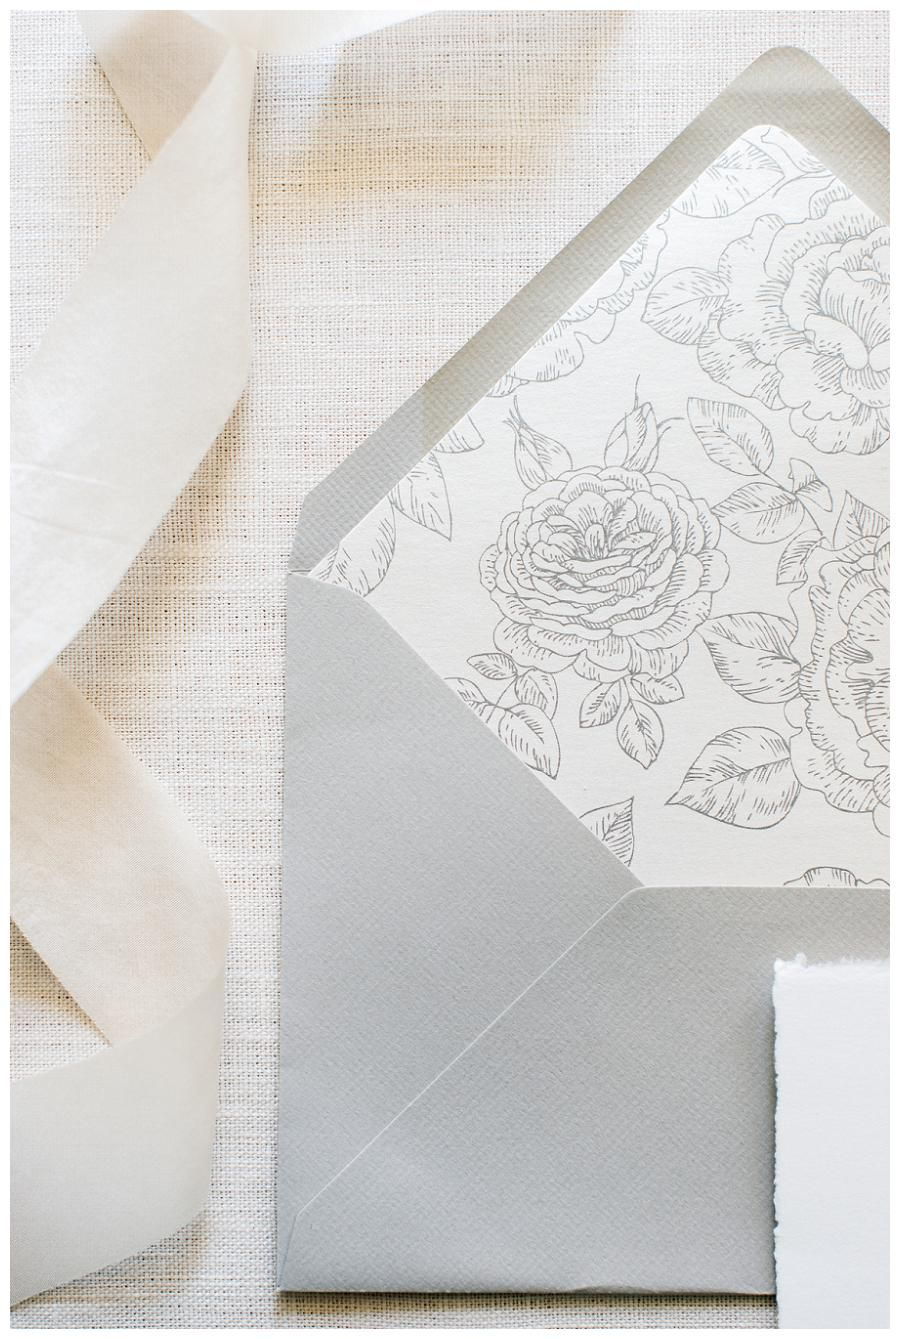 Outer Wedding Invitation Envelope In Soft Dove Gray With Botanical